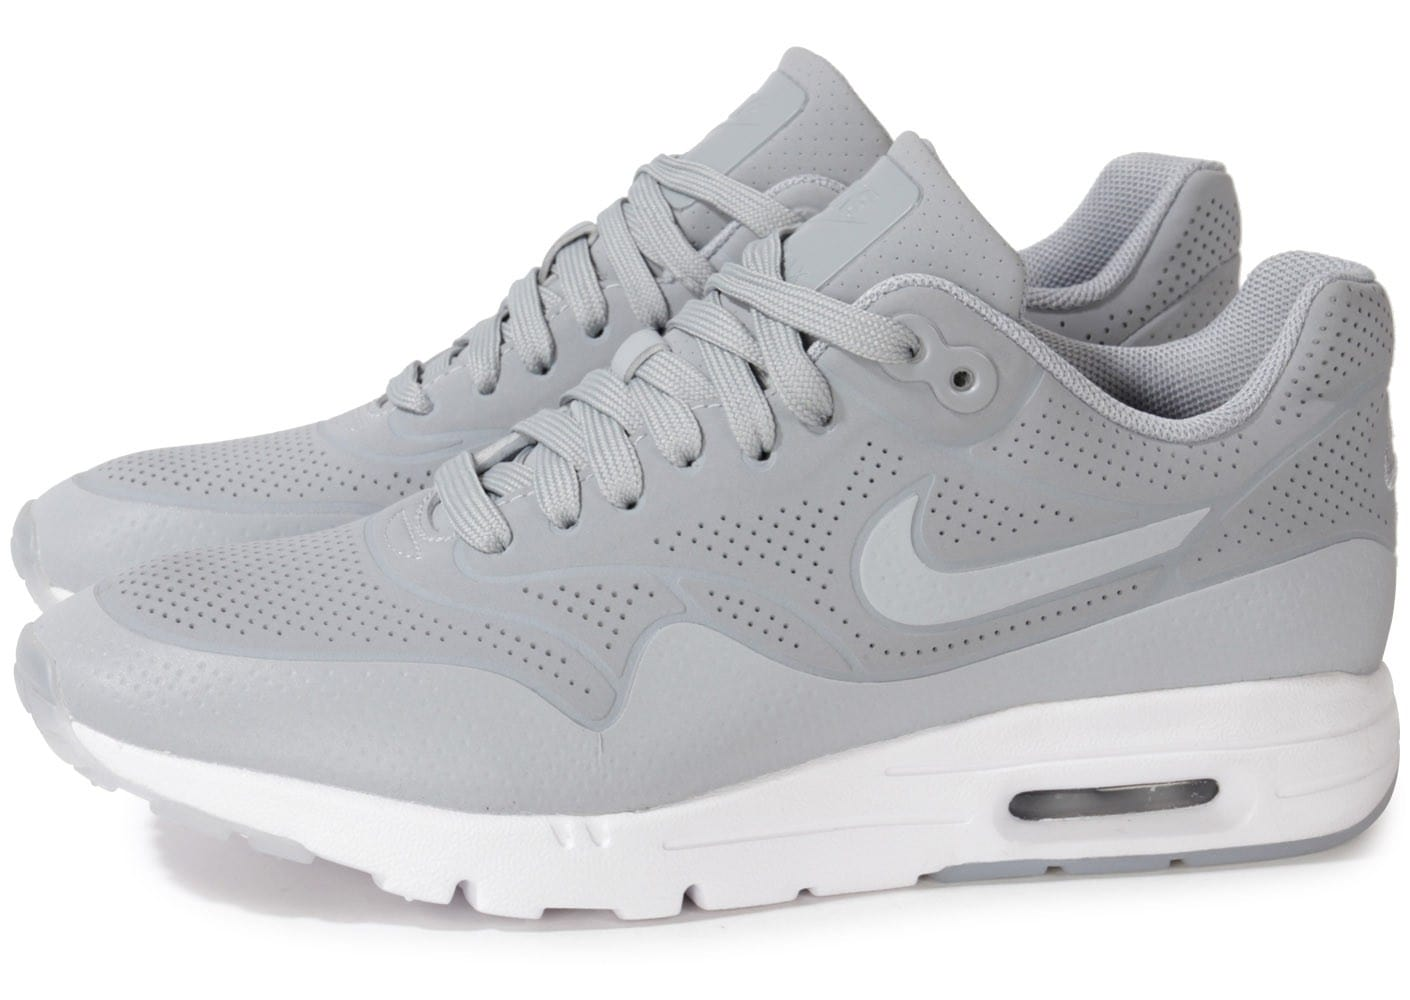 newest 17641 0aa9f Cliquez pour zoomer Chaussures Nike Air Max 1 Ultra Moire Wolf Grey vue  extérieure ...